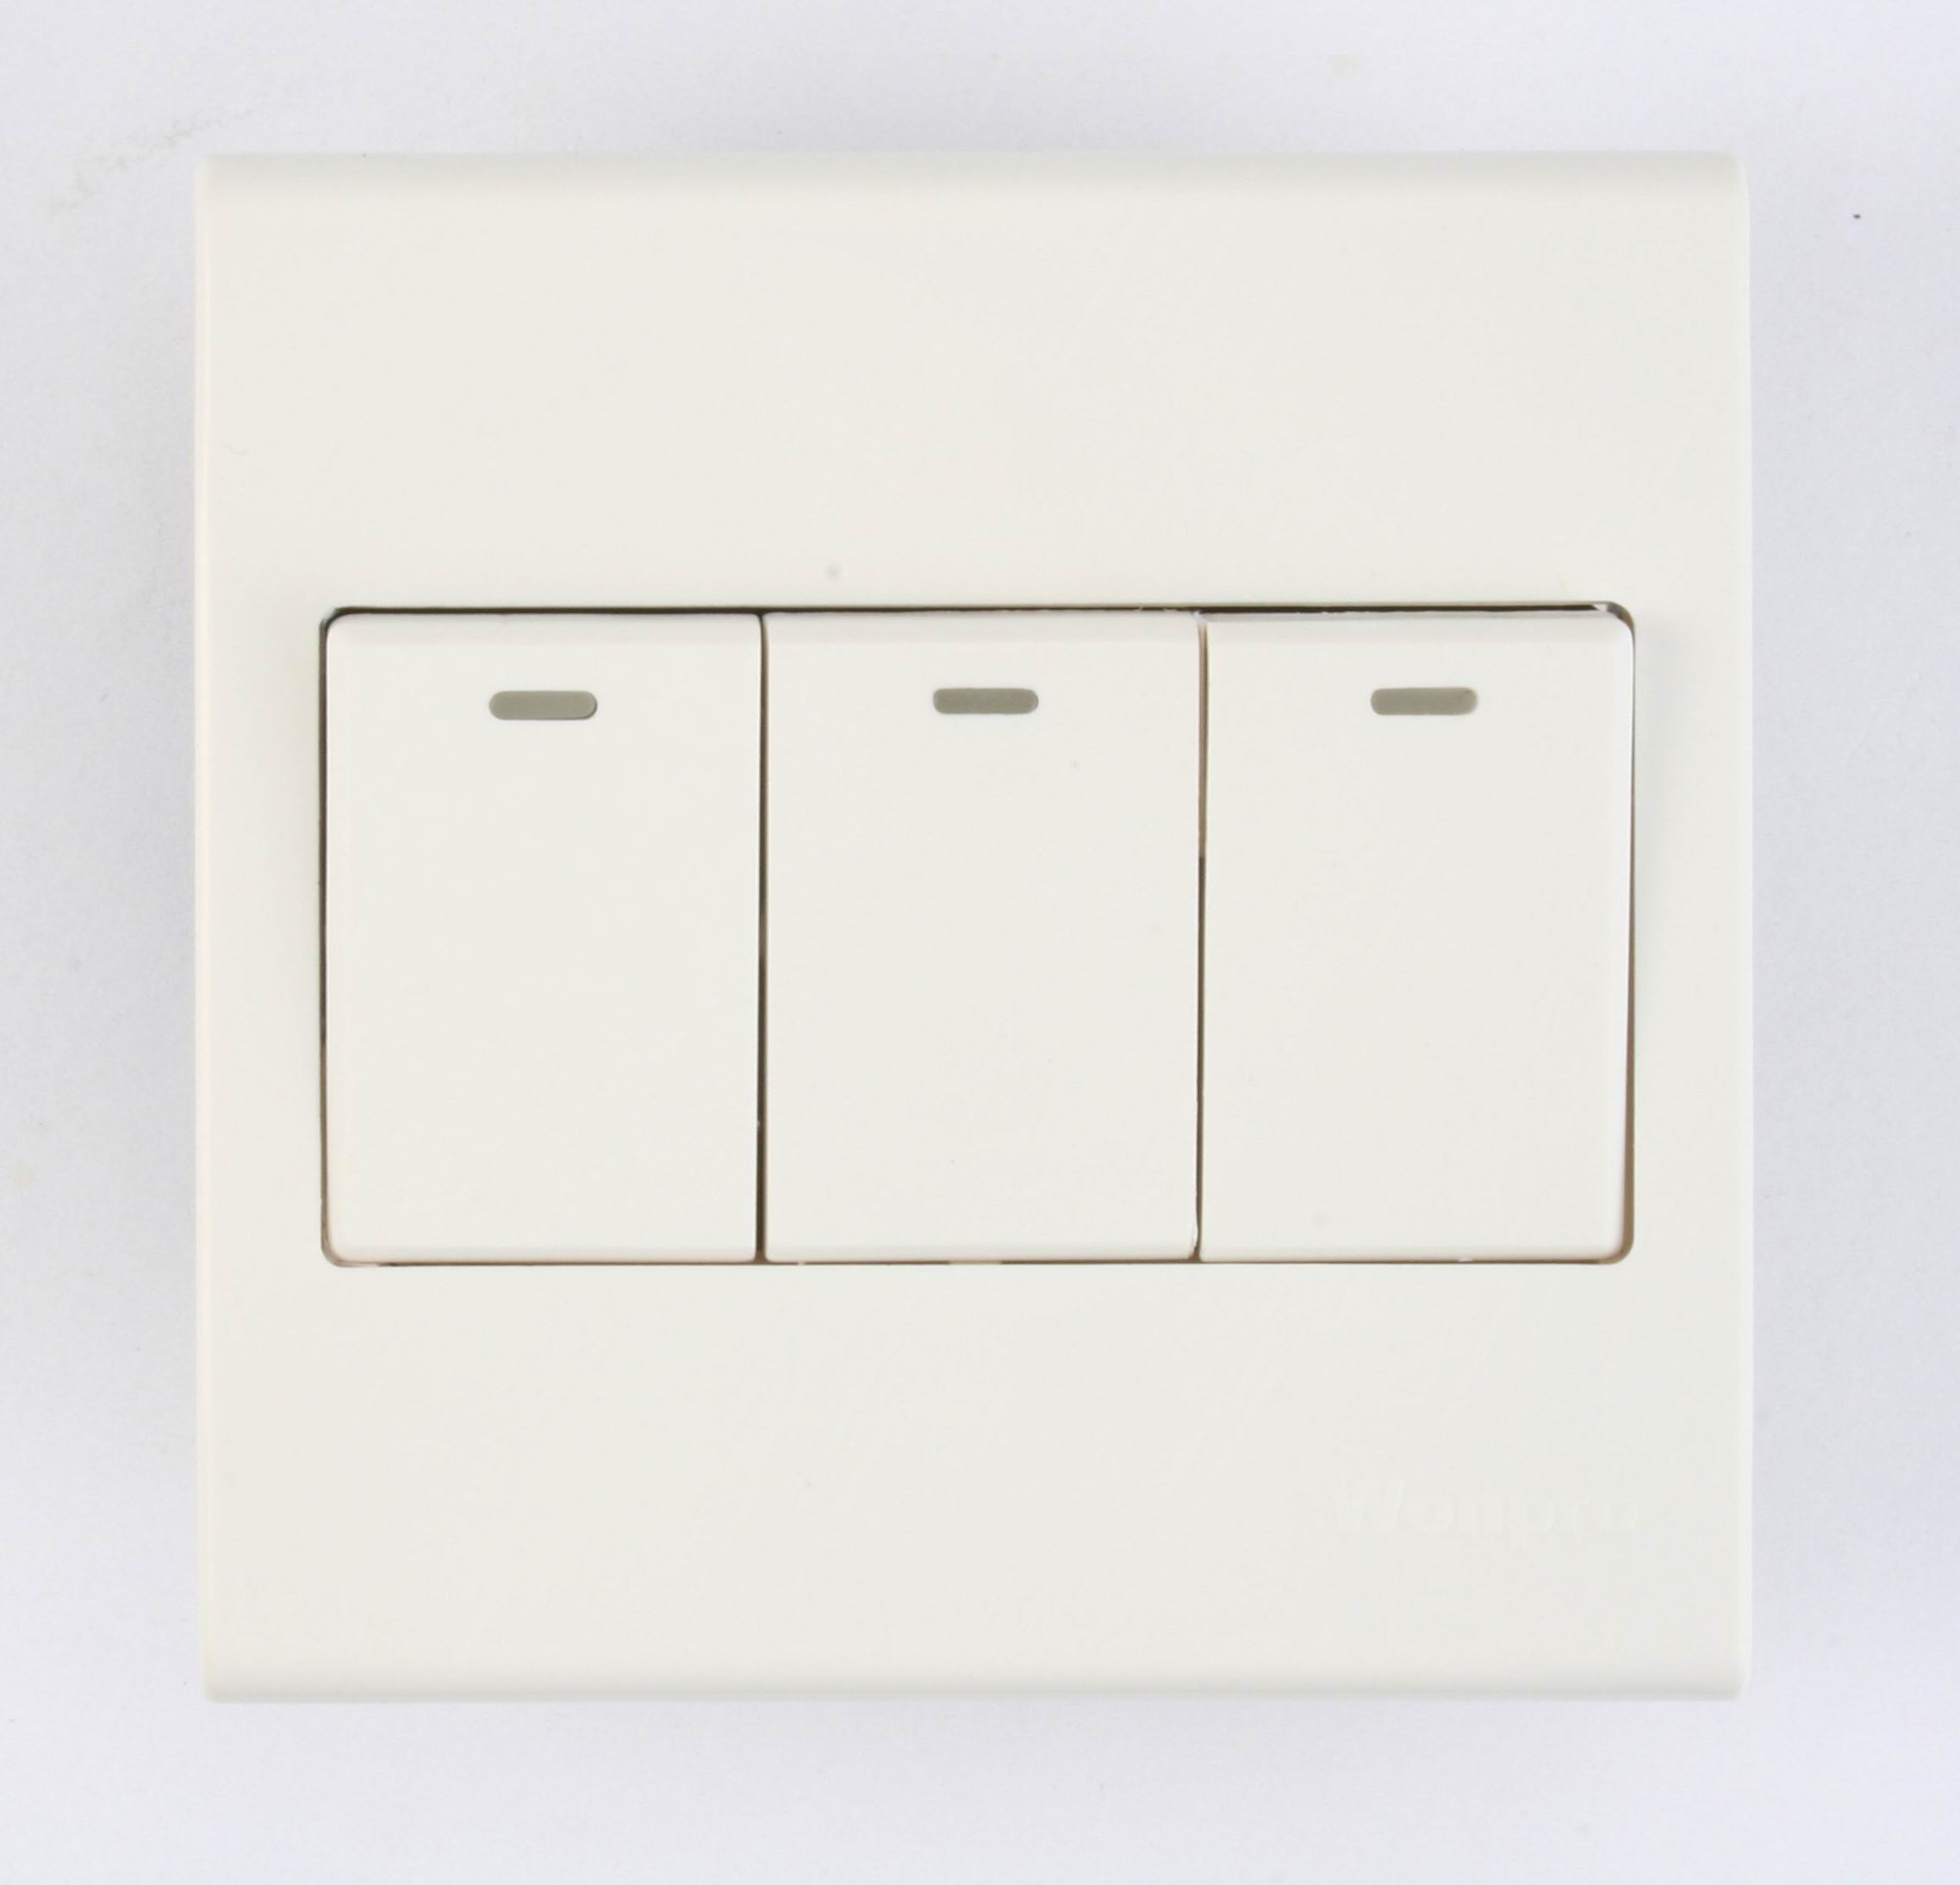 3 Gang Switch Set With Indicator